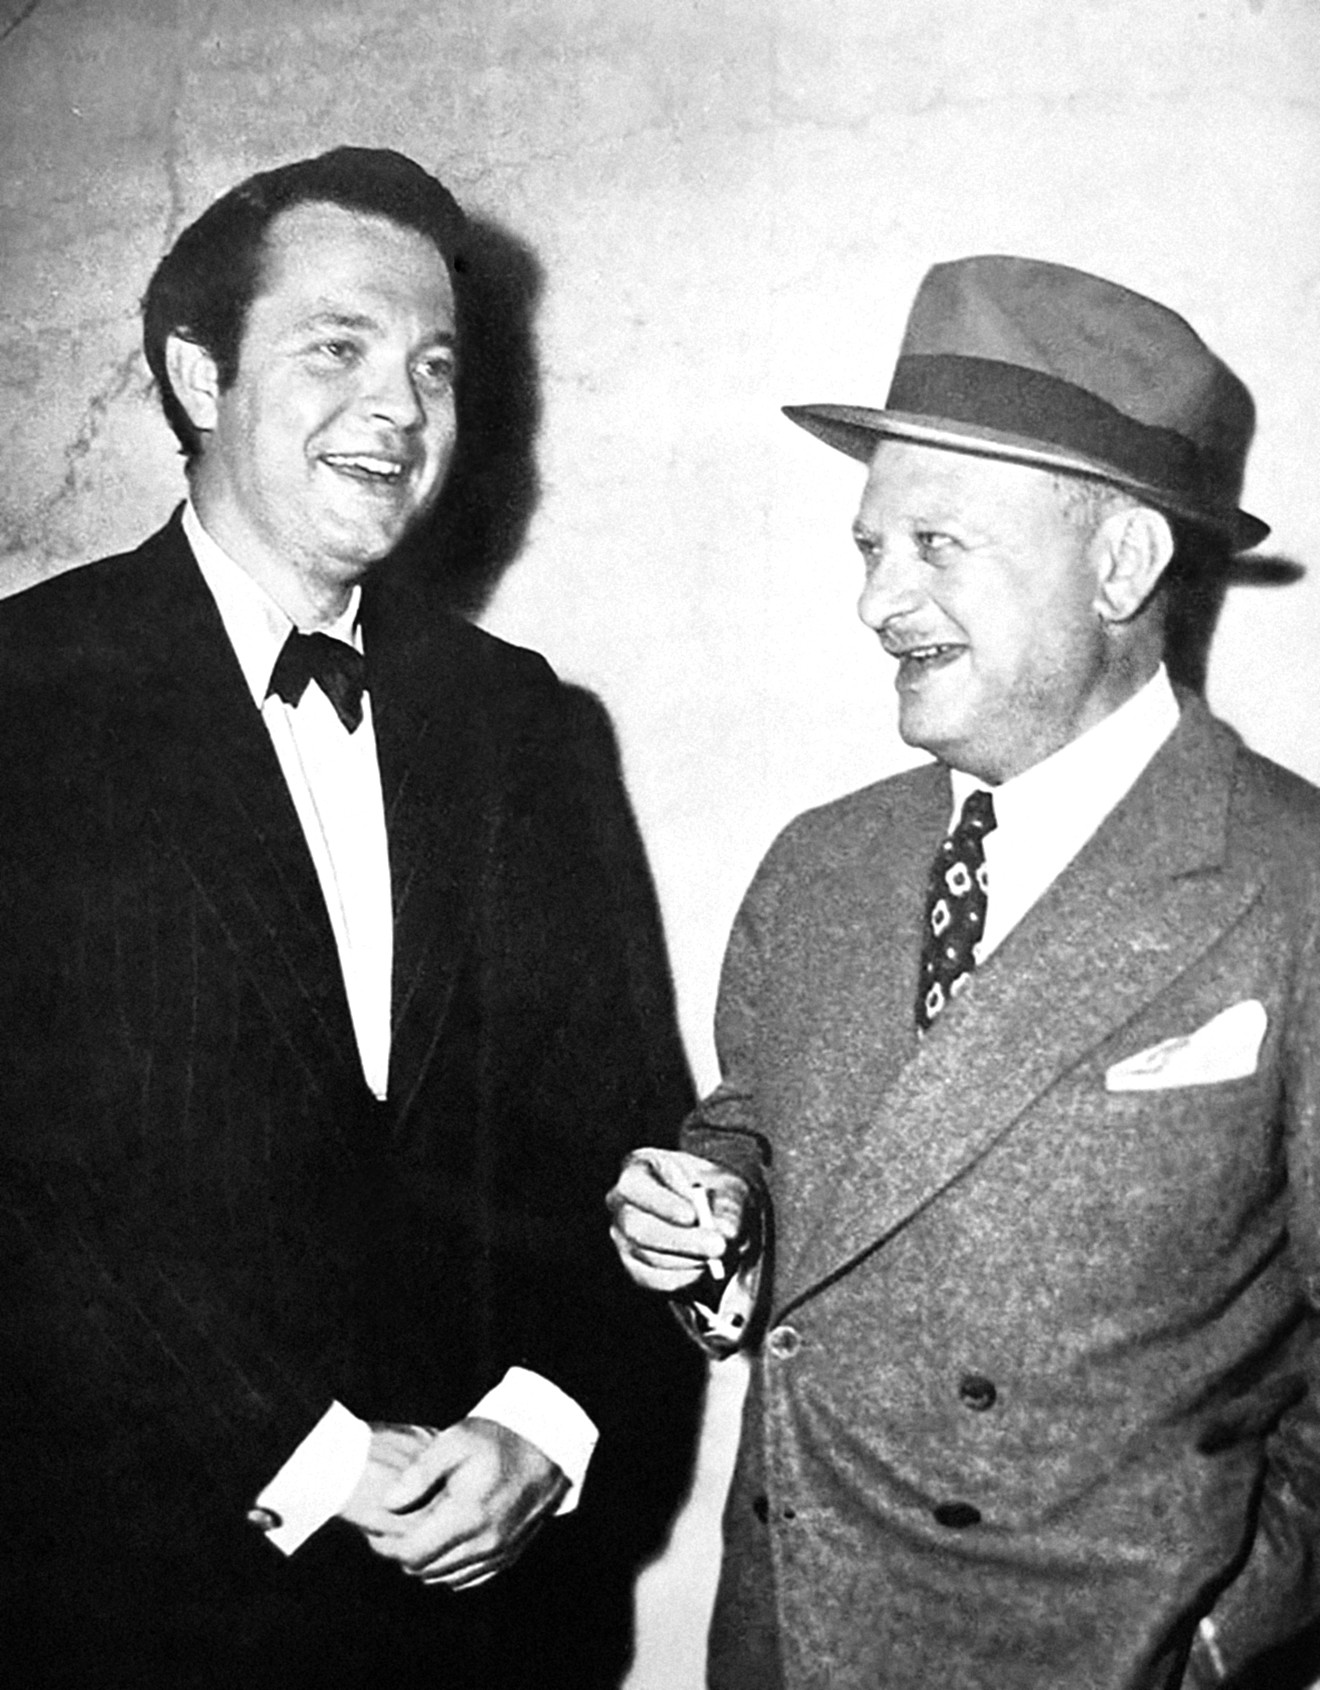 Herman Mankiewicz (right) with Orson Welles, ca. 1940s